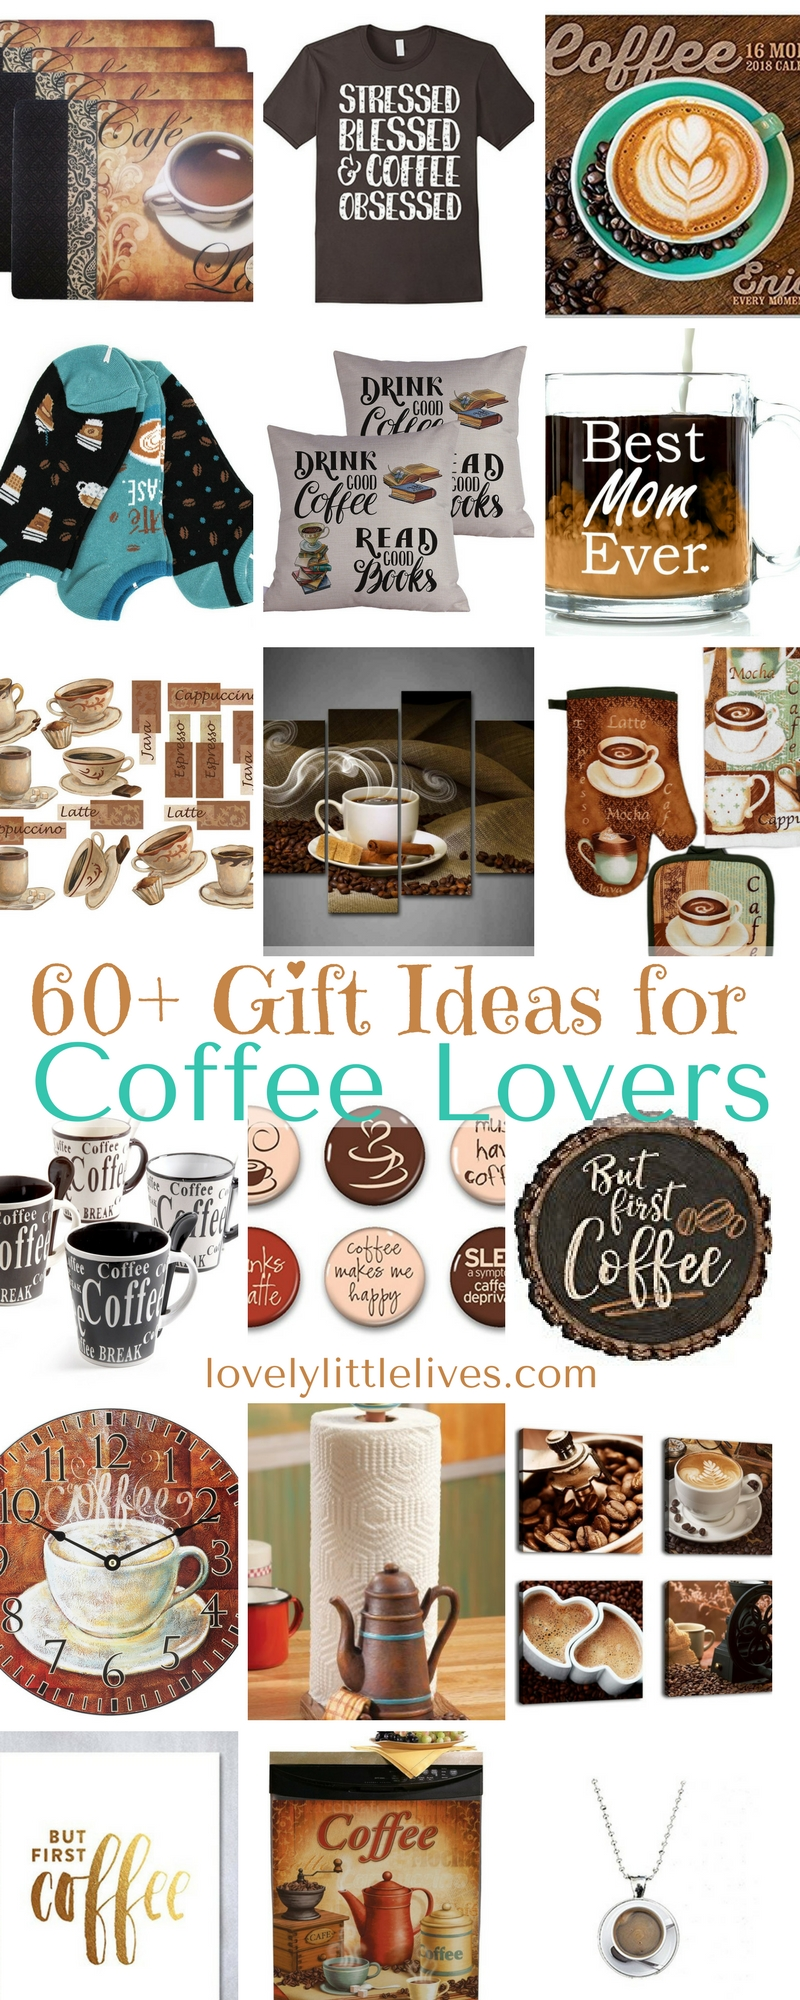 60+ Gift Guide for Coffee Lovers